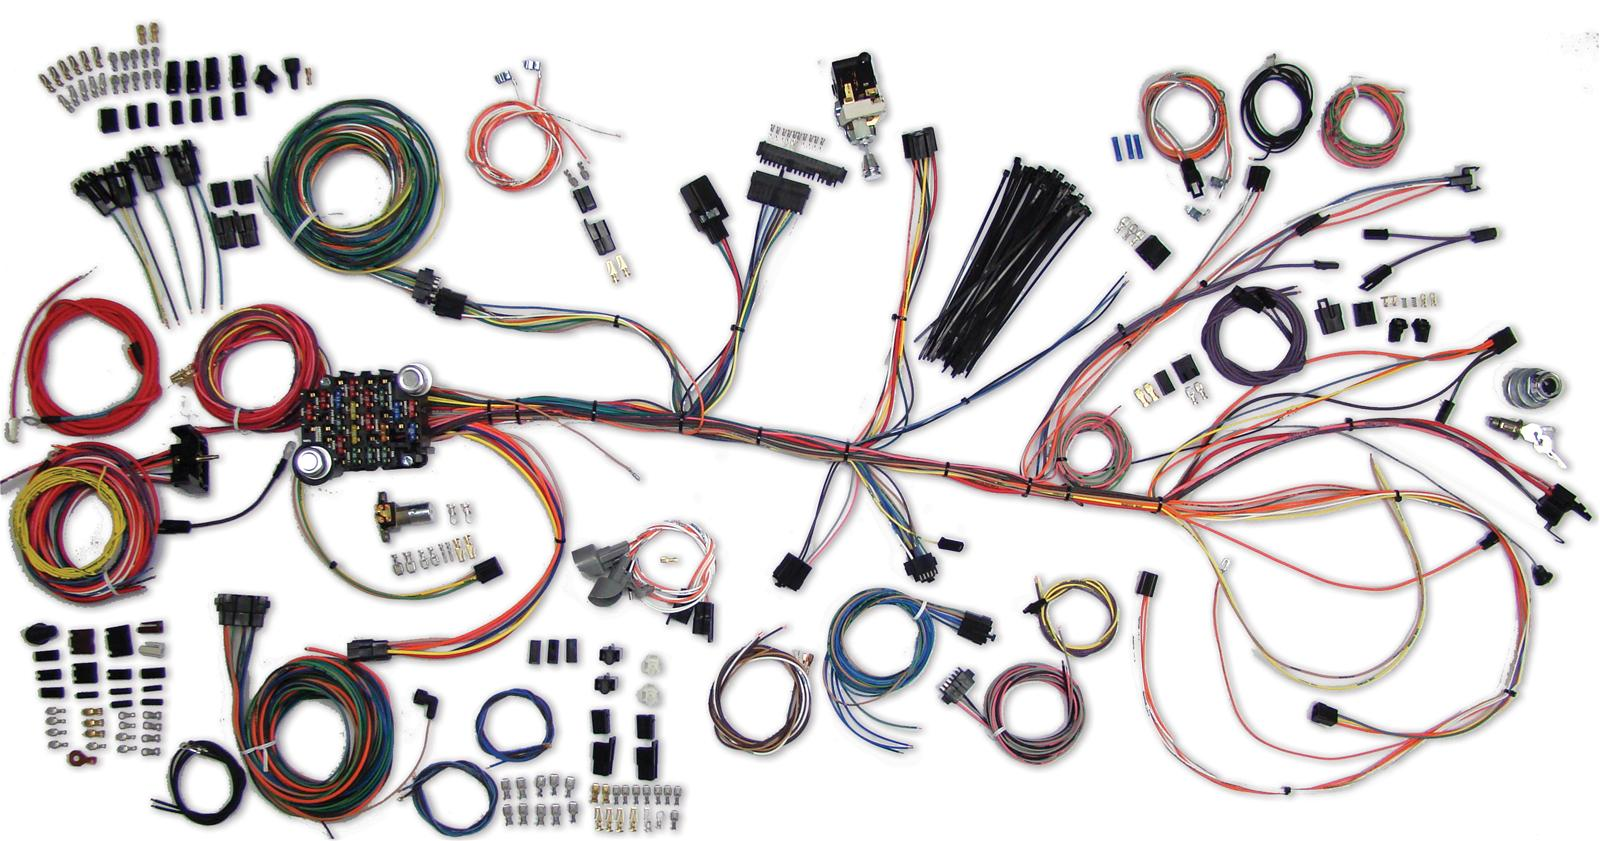 hight resolution of american autowire classic update series wiring harness kits 500981american autowire classic update series wiring harness kits